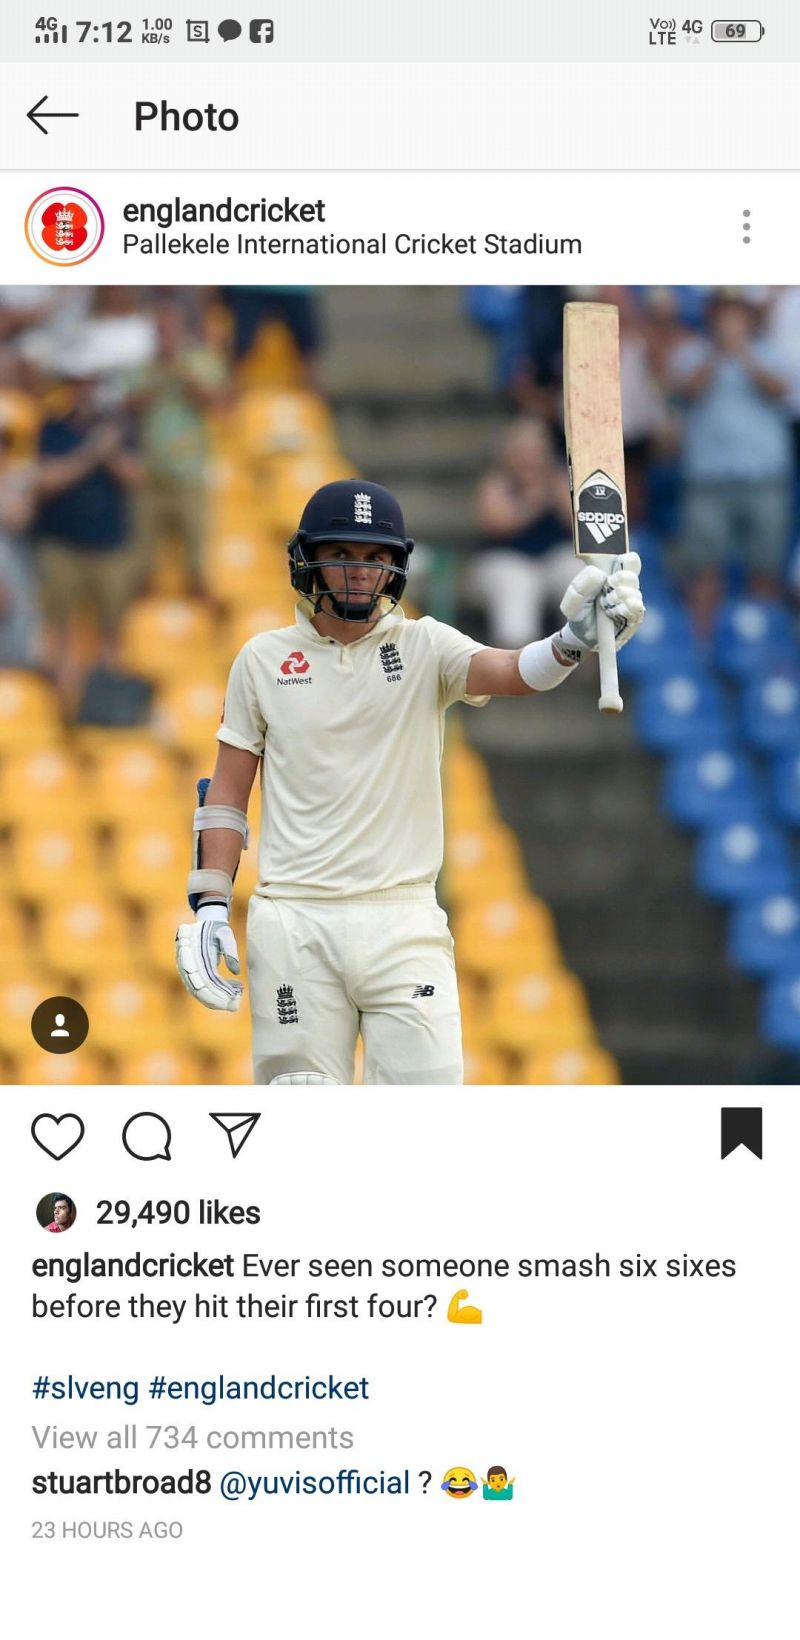 This saucy comment by Stuart Broad has received over 5.1k likes and 600+ replies till now.